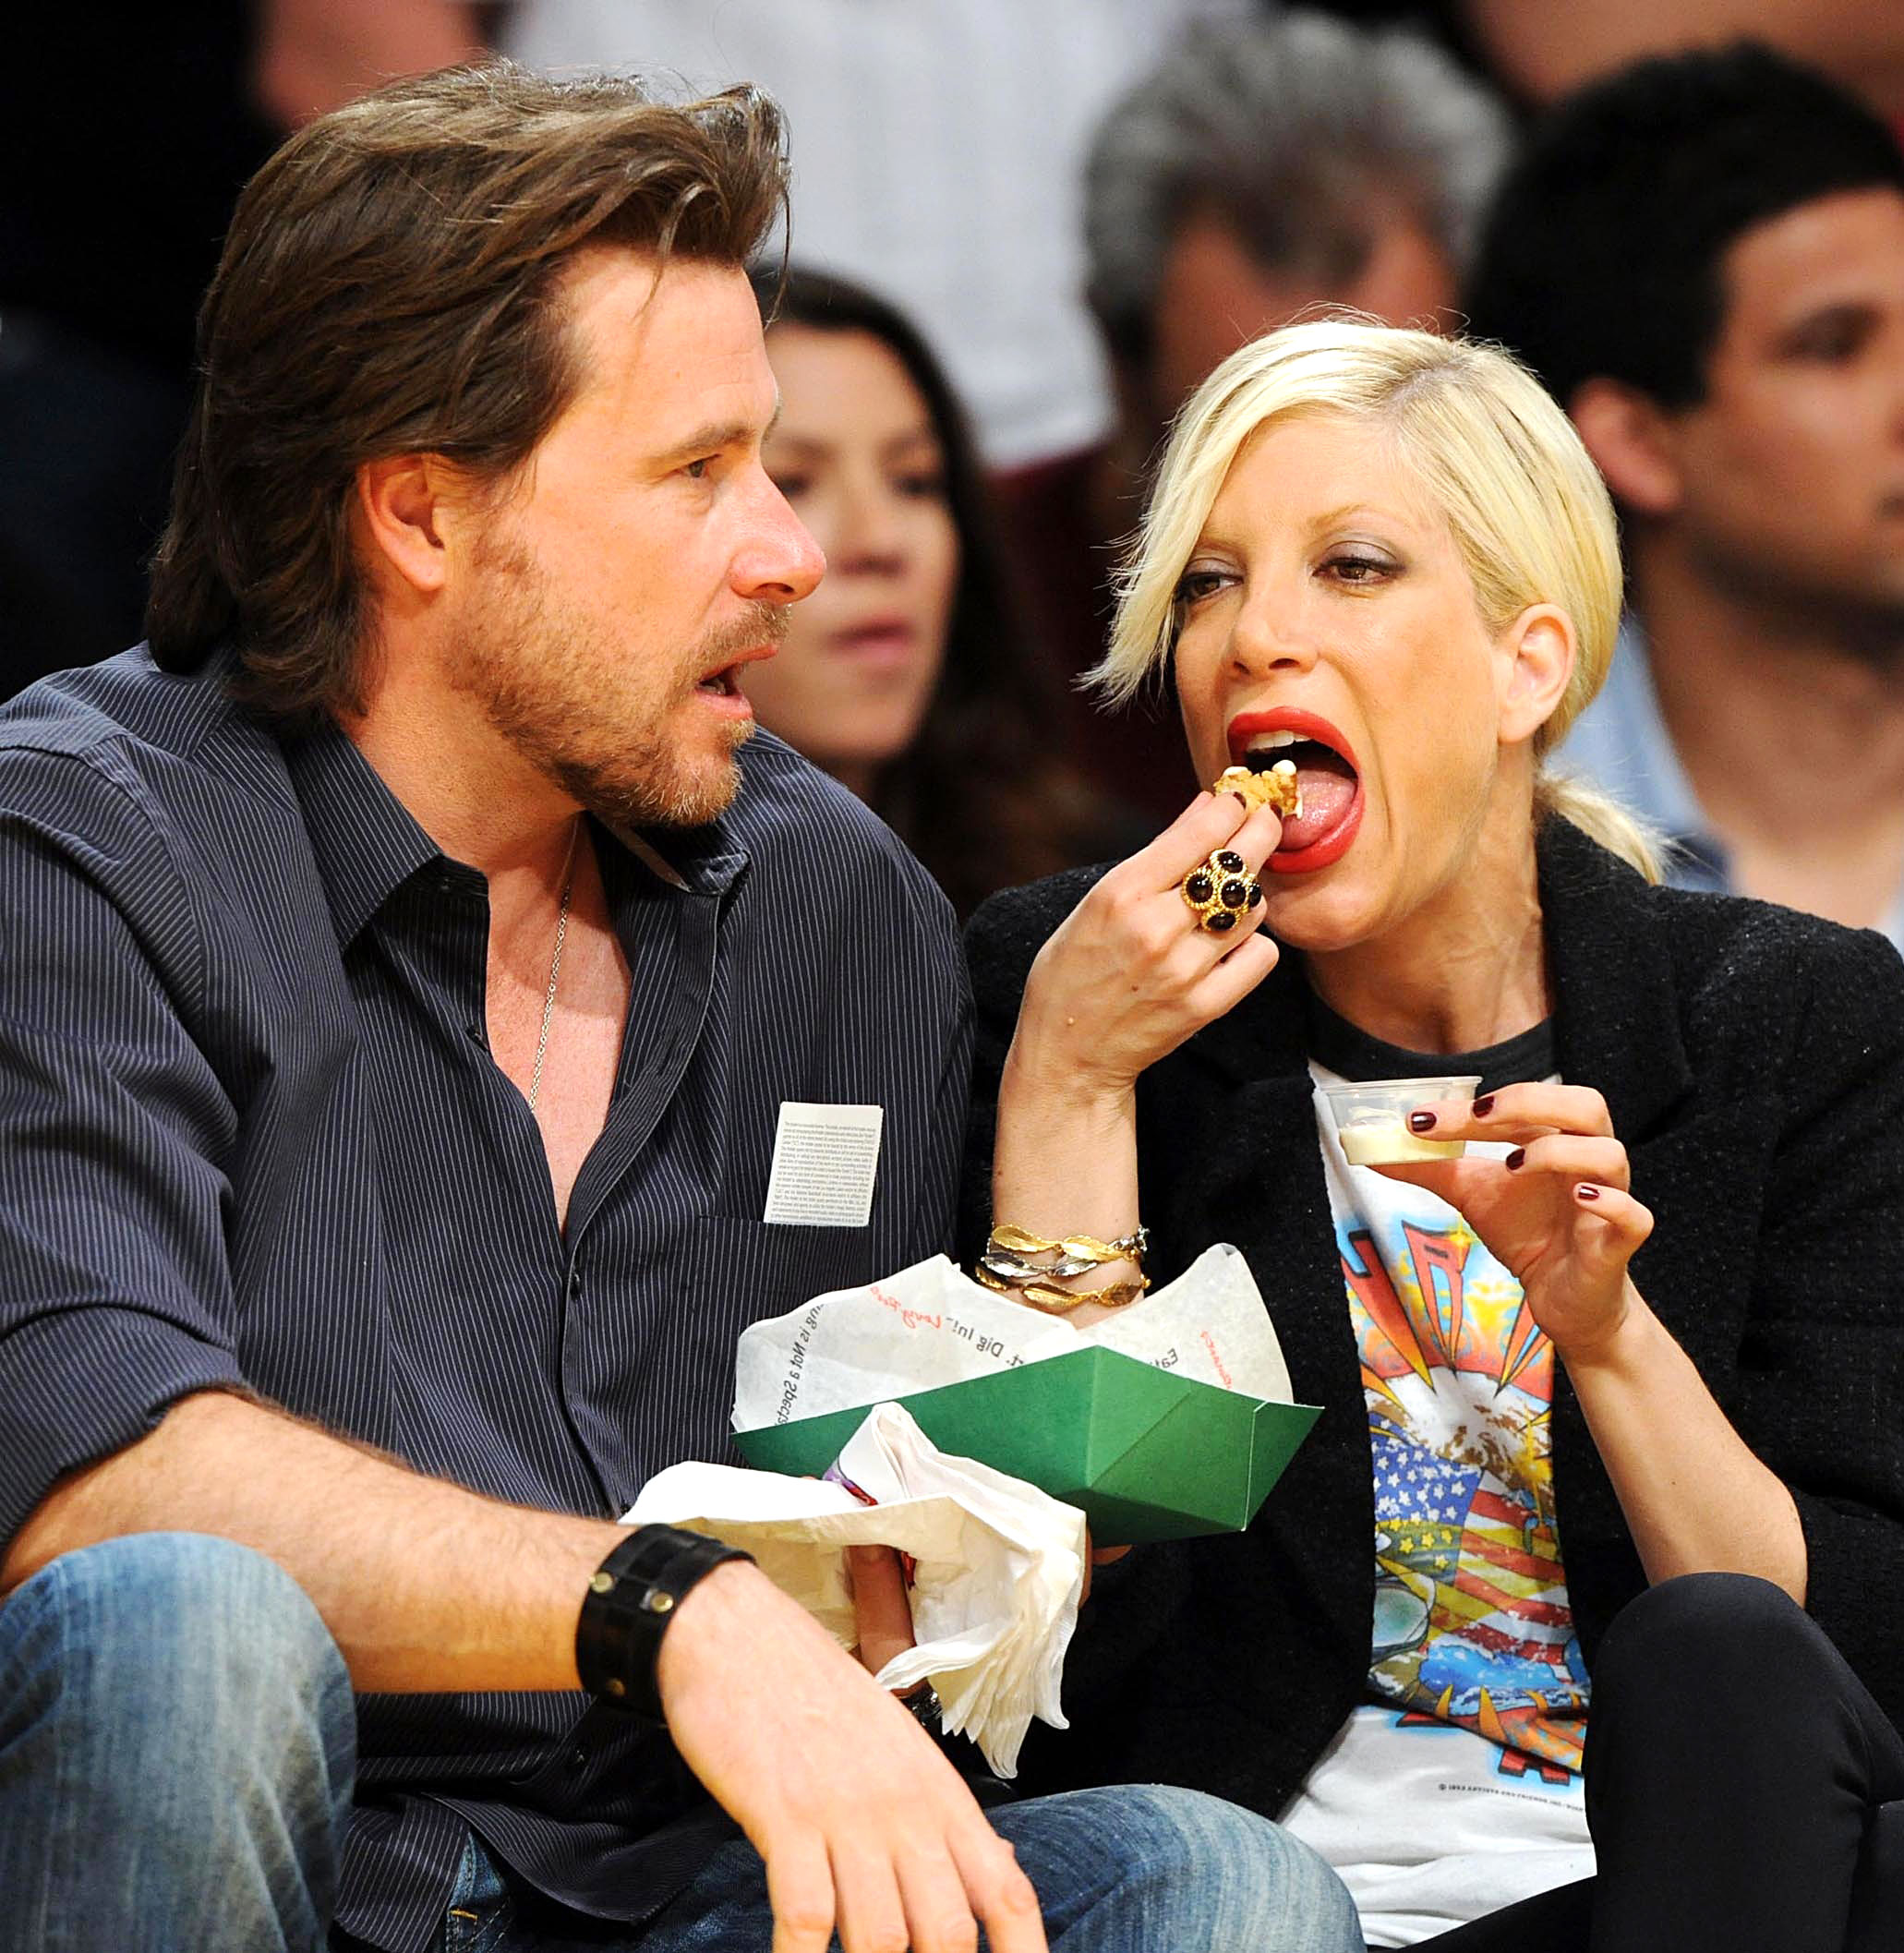 Celebs Eating Courtside - Ever the attentive husband, McDermott held the takeout container as the 90210 alum helped herself to a bite of food. The couple was at L.A.'s Staples Center on April 4, 2009, to see the Lakers go up against the Houston Rockets.